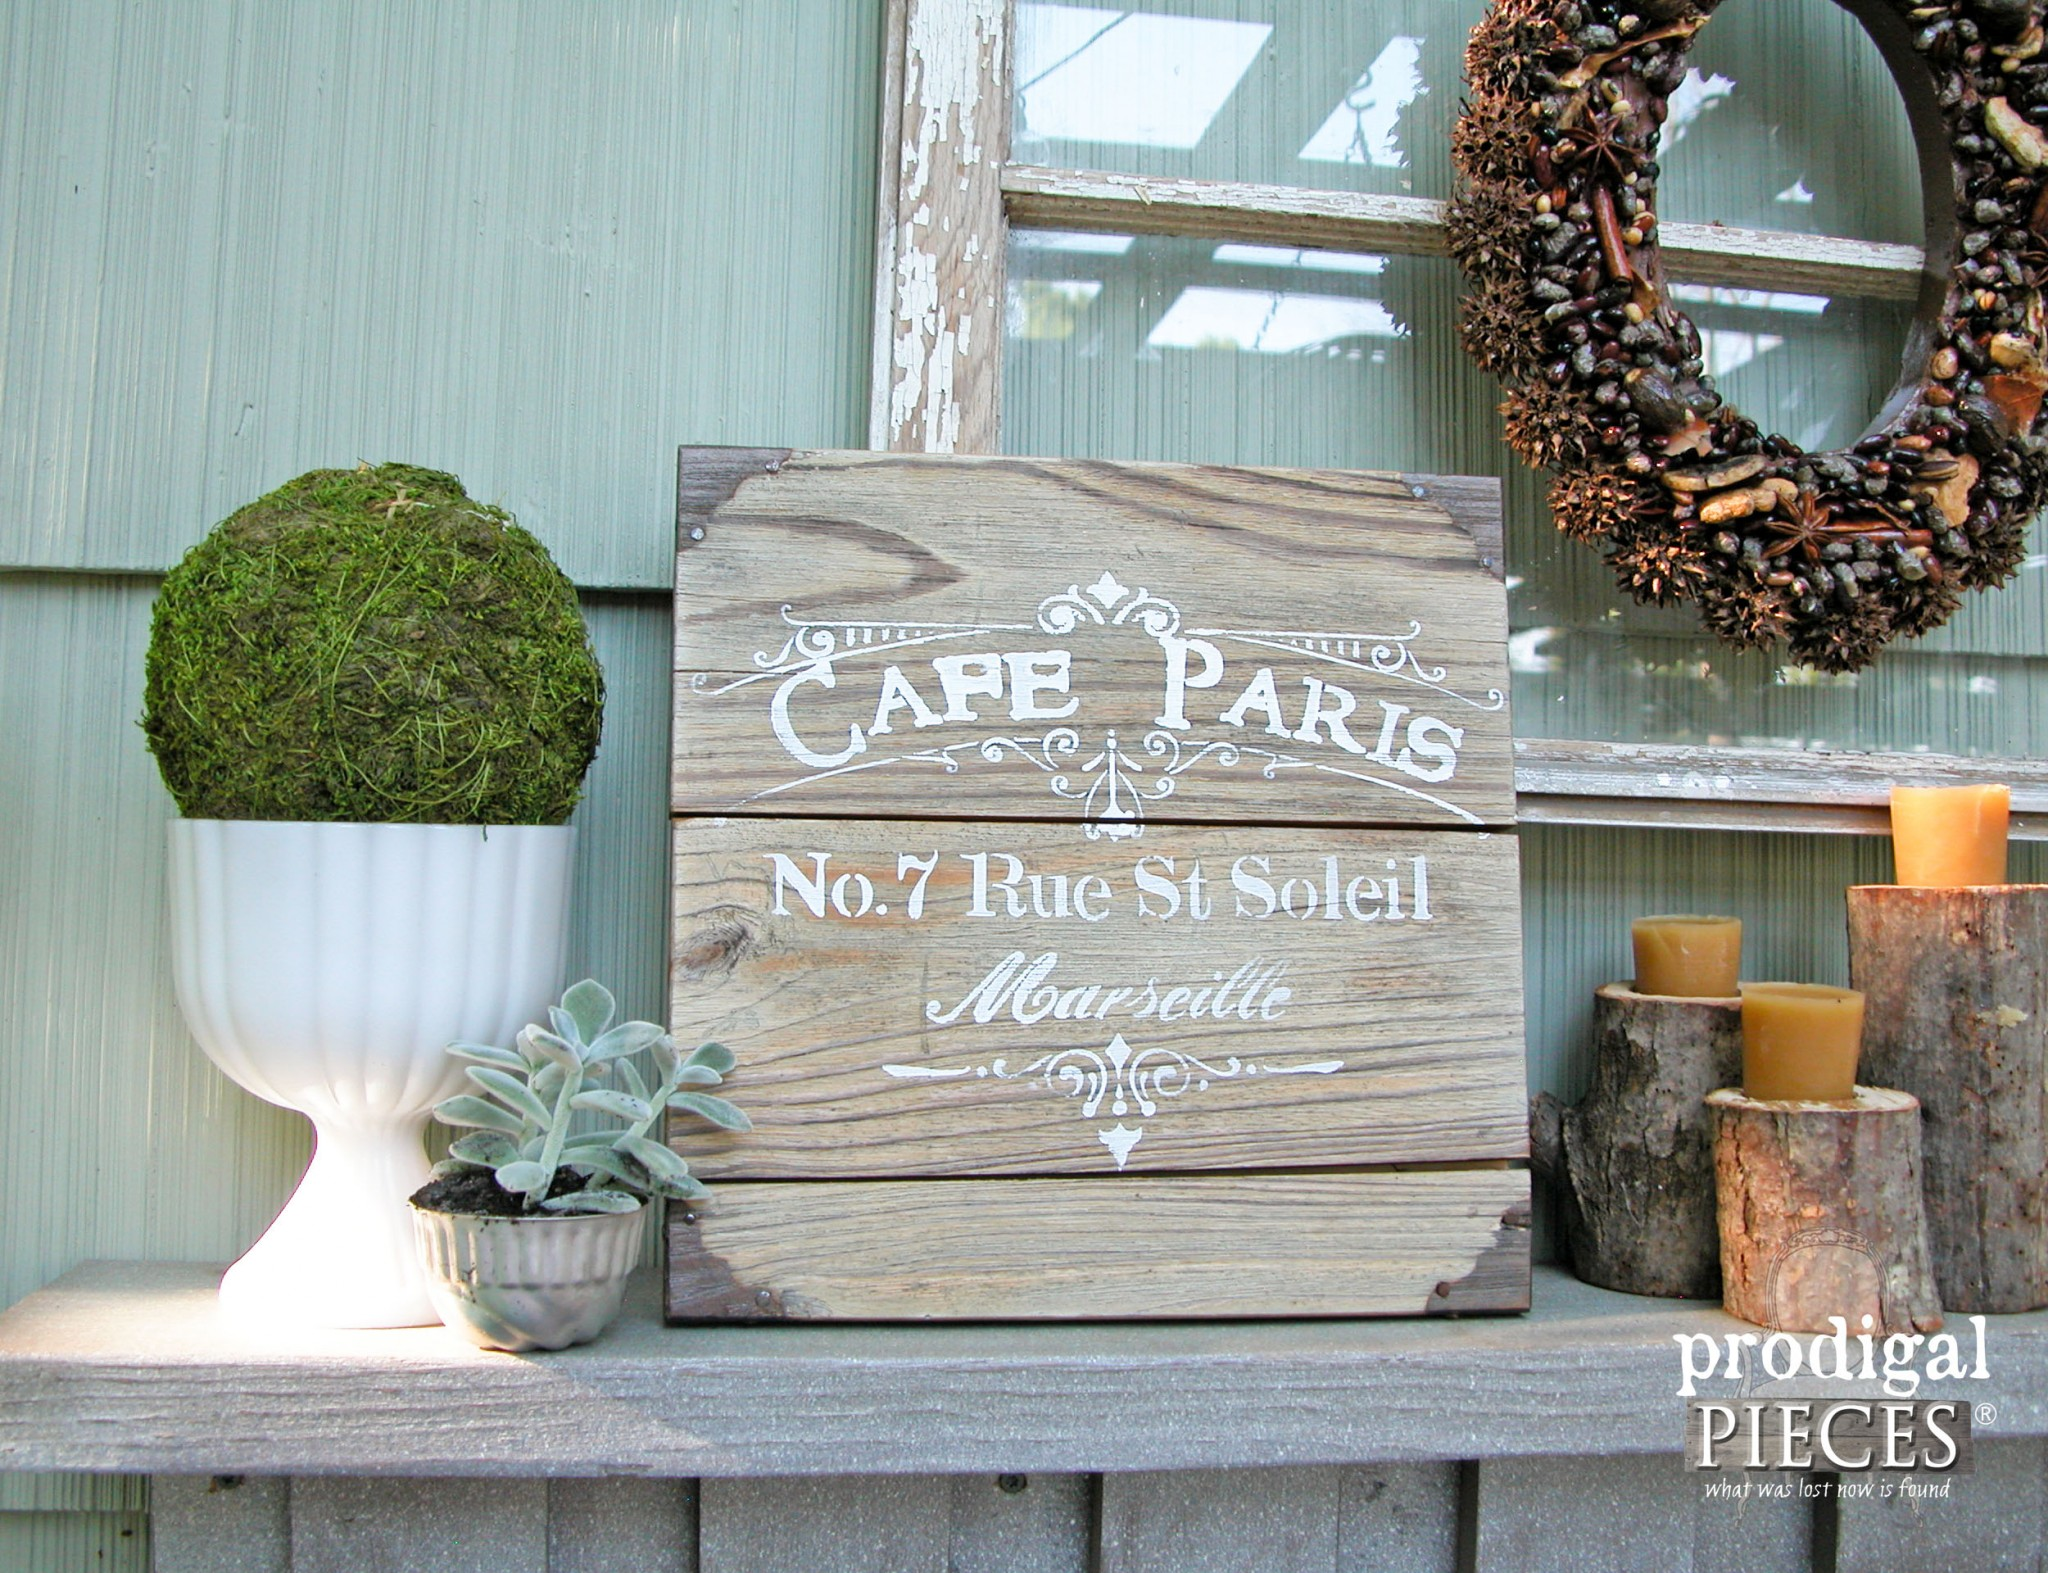 Cafe Paris Reclaimed Wood Sign by Prodigal Pieces | www.prodigalpieces.com